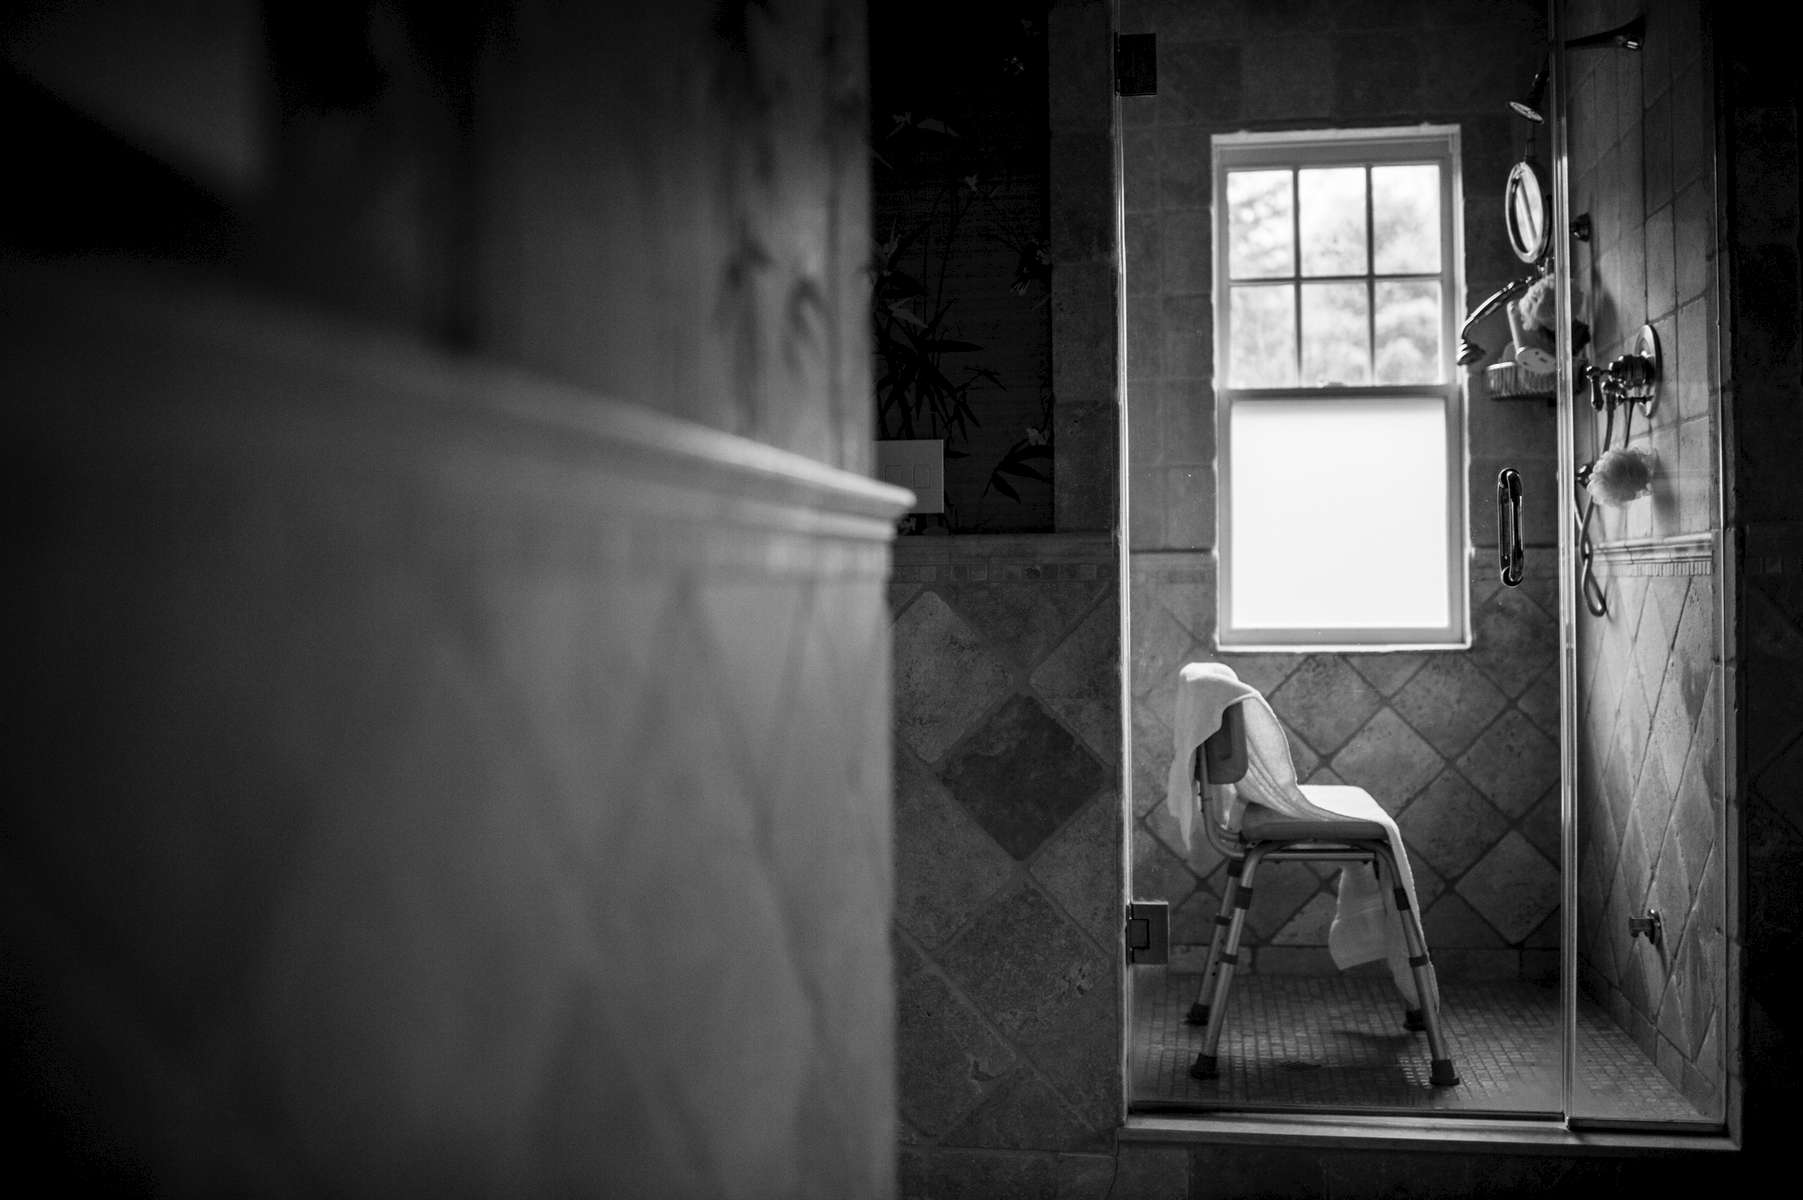 Unable to stand balanced for a long period of time, Laurel receives a bathroom chair from hospice for her to use when she is bathing. She never ended up used this chair. Chappaqua, NY. December 2014.